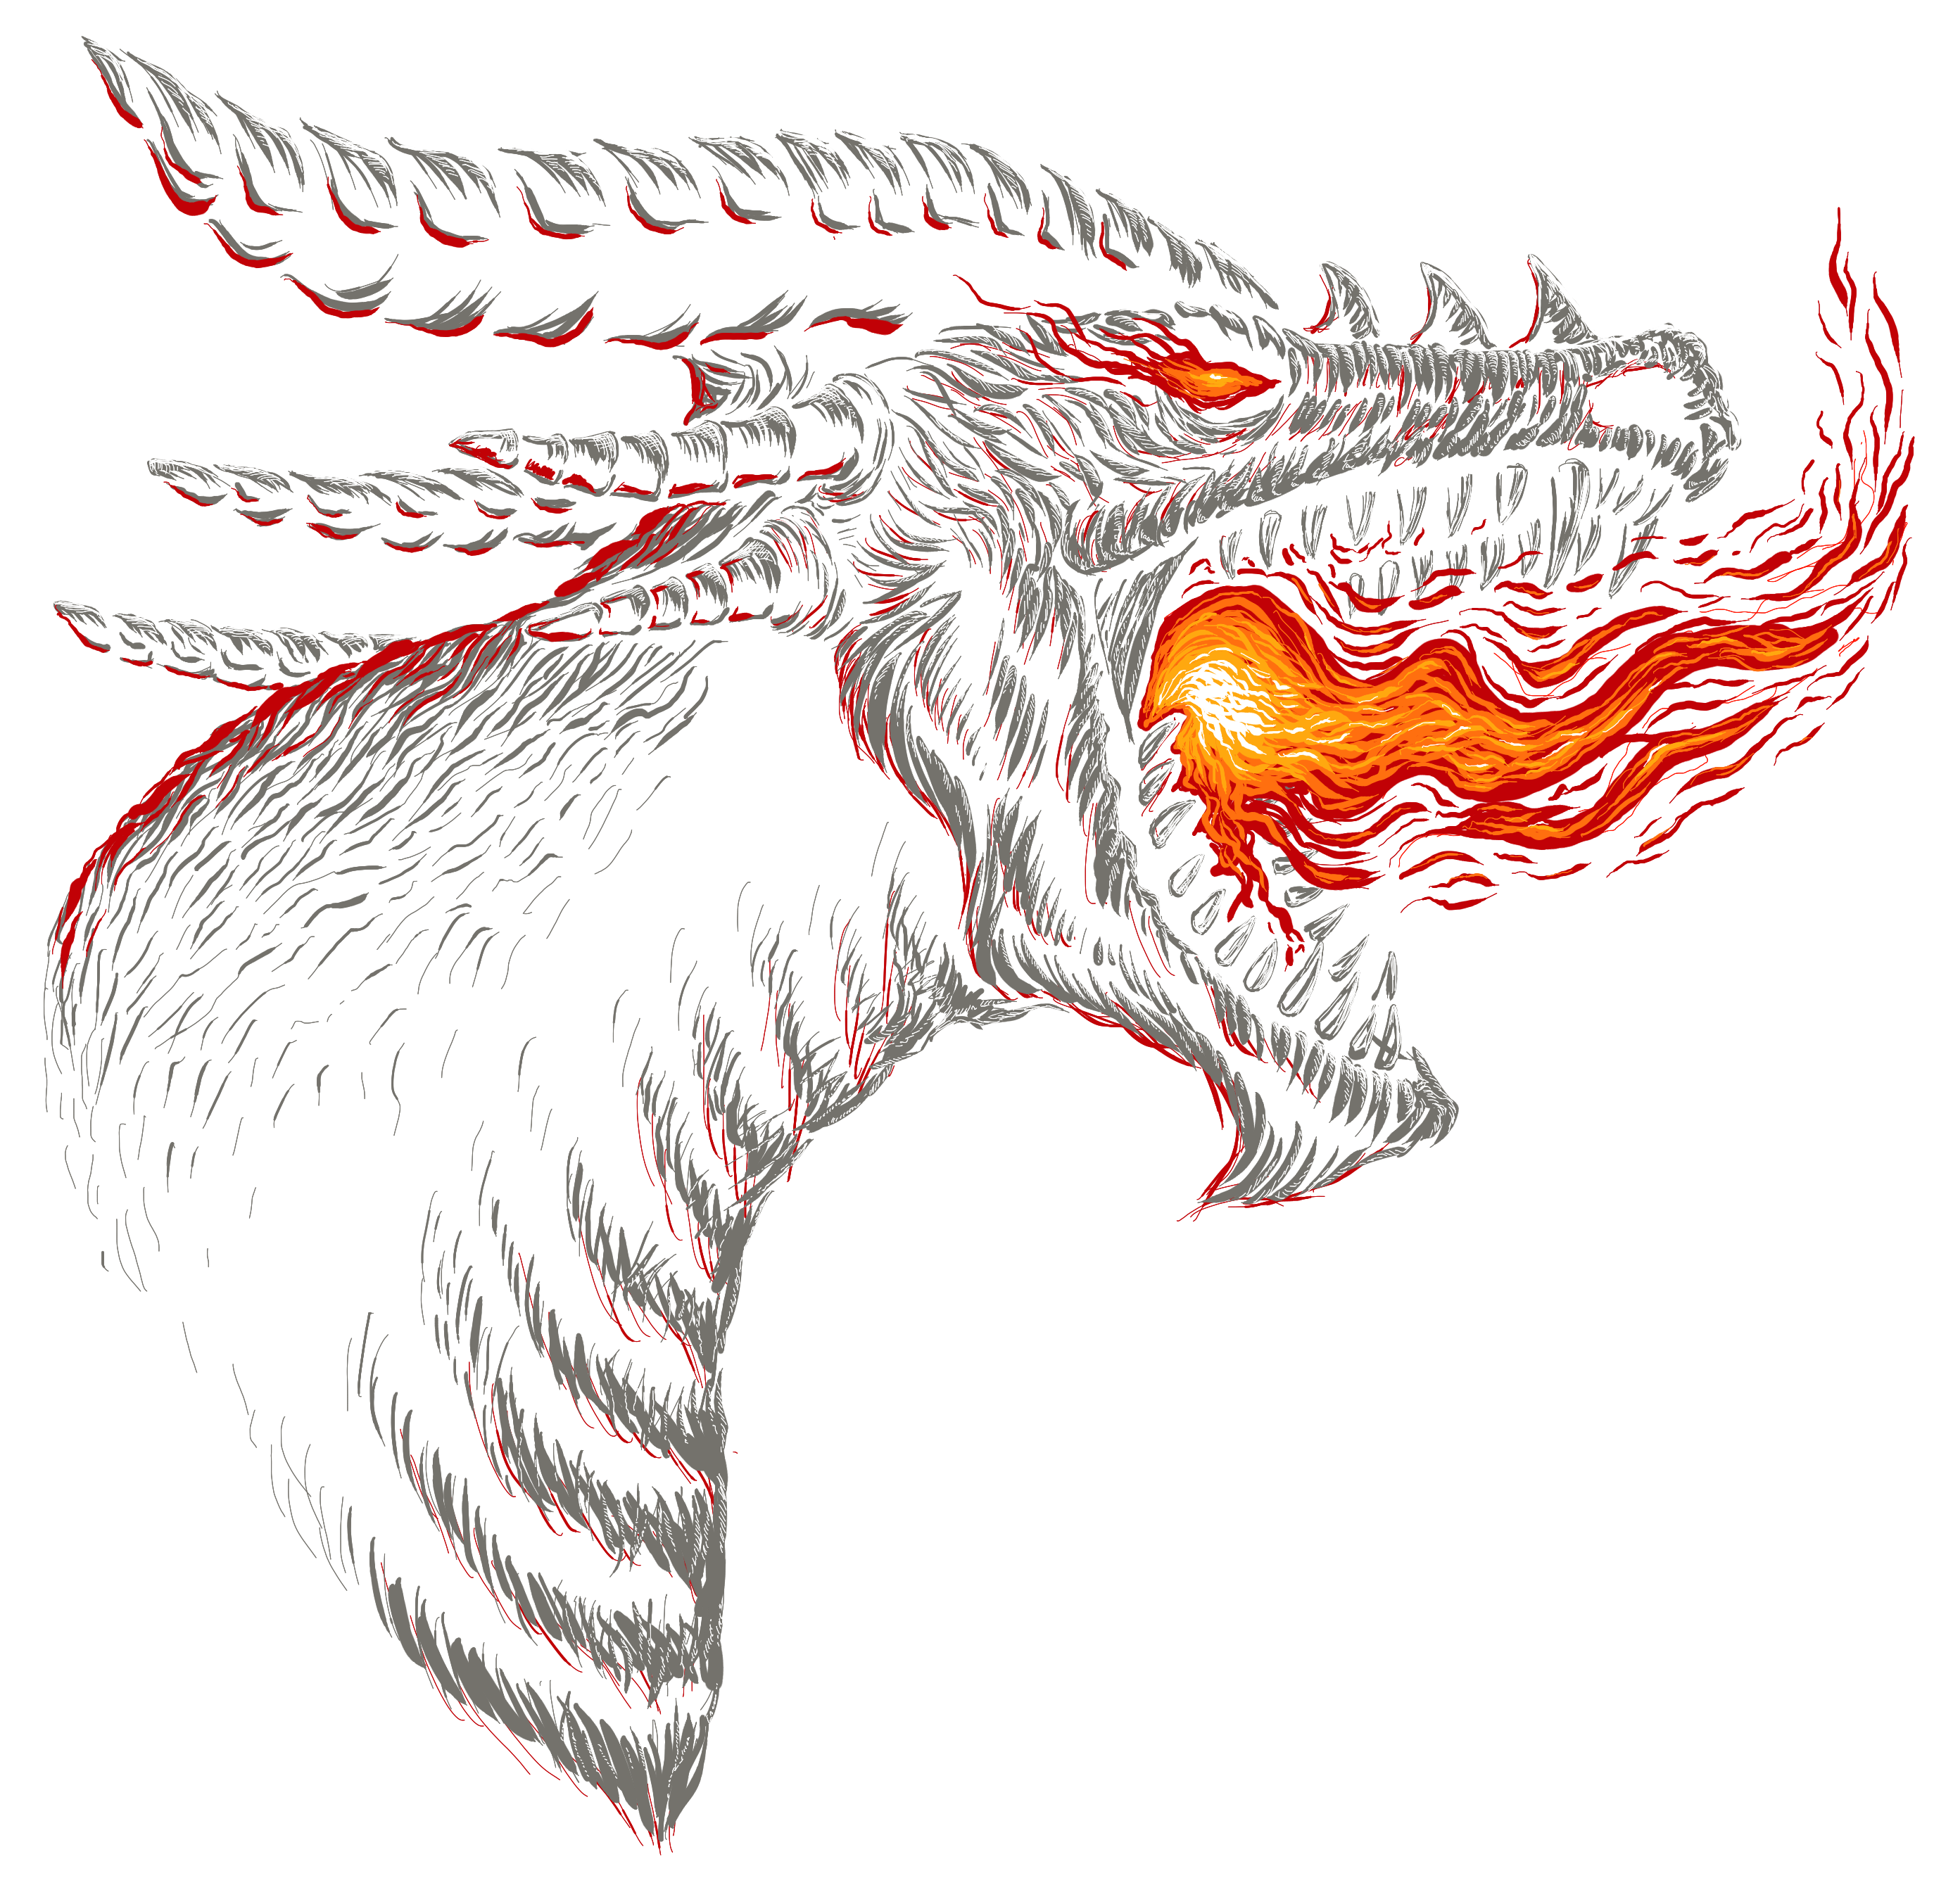 Scary Dragon image for a tee shirt